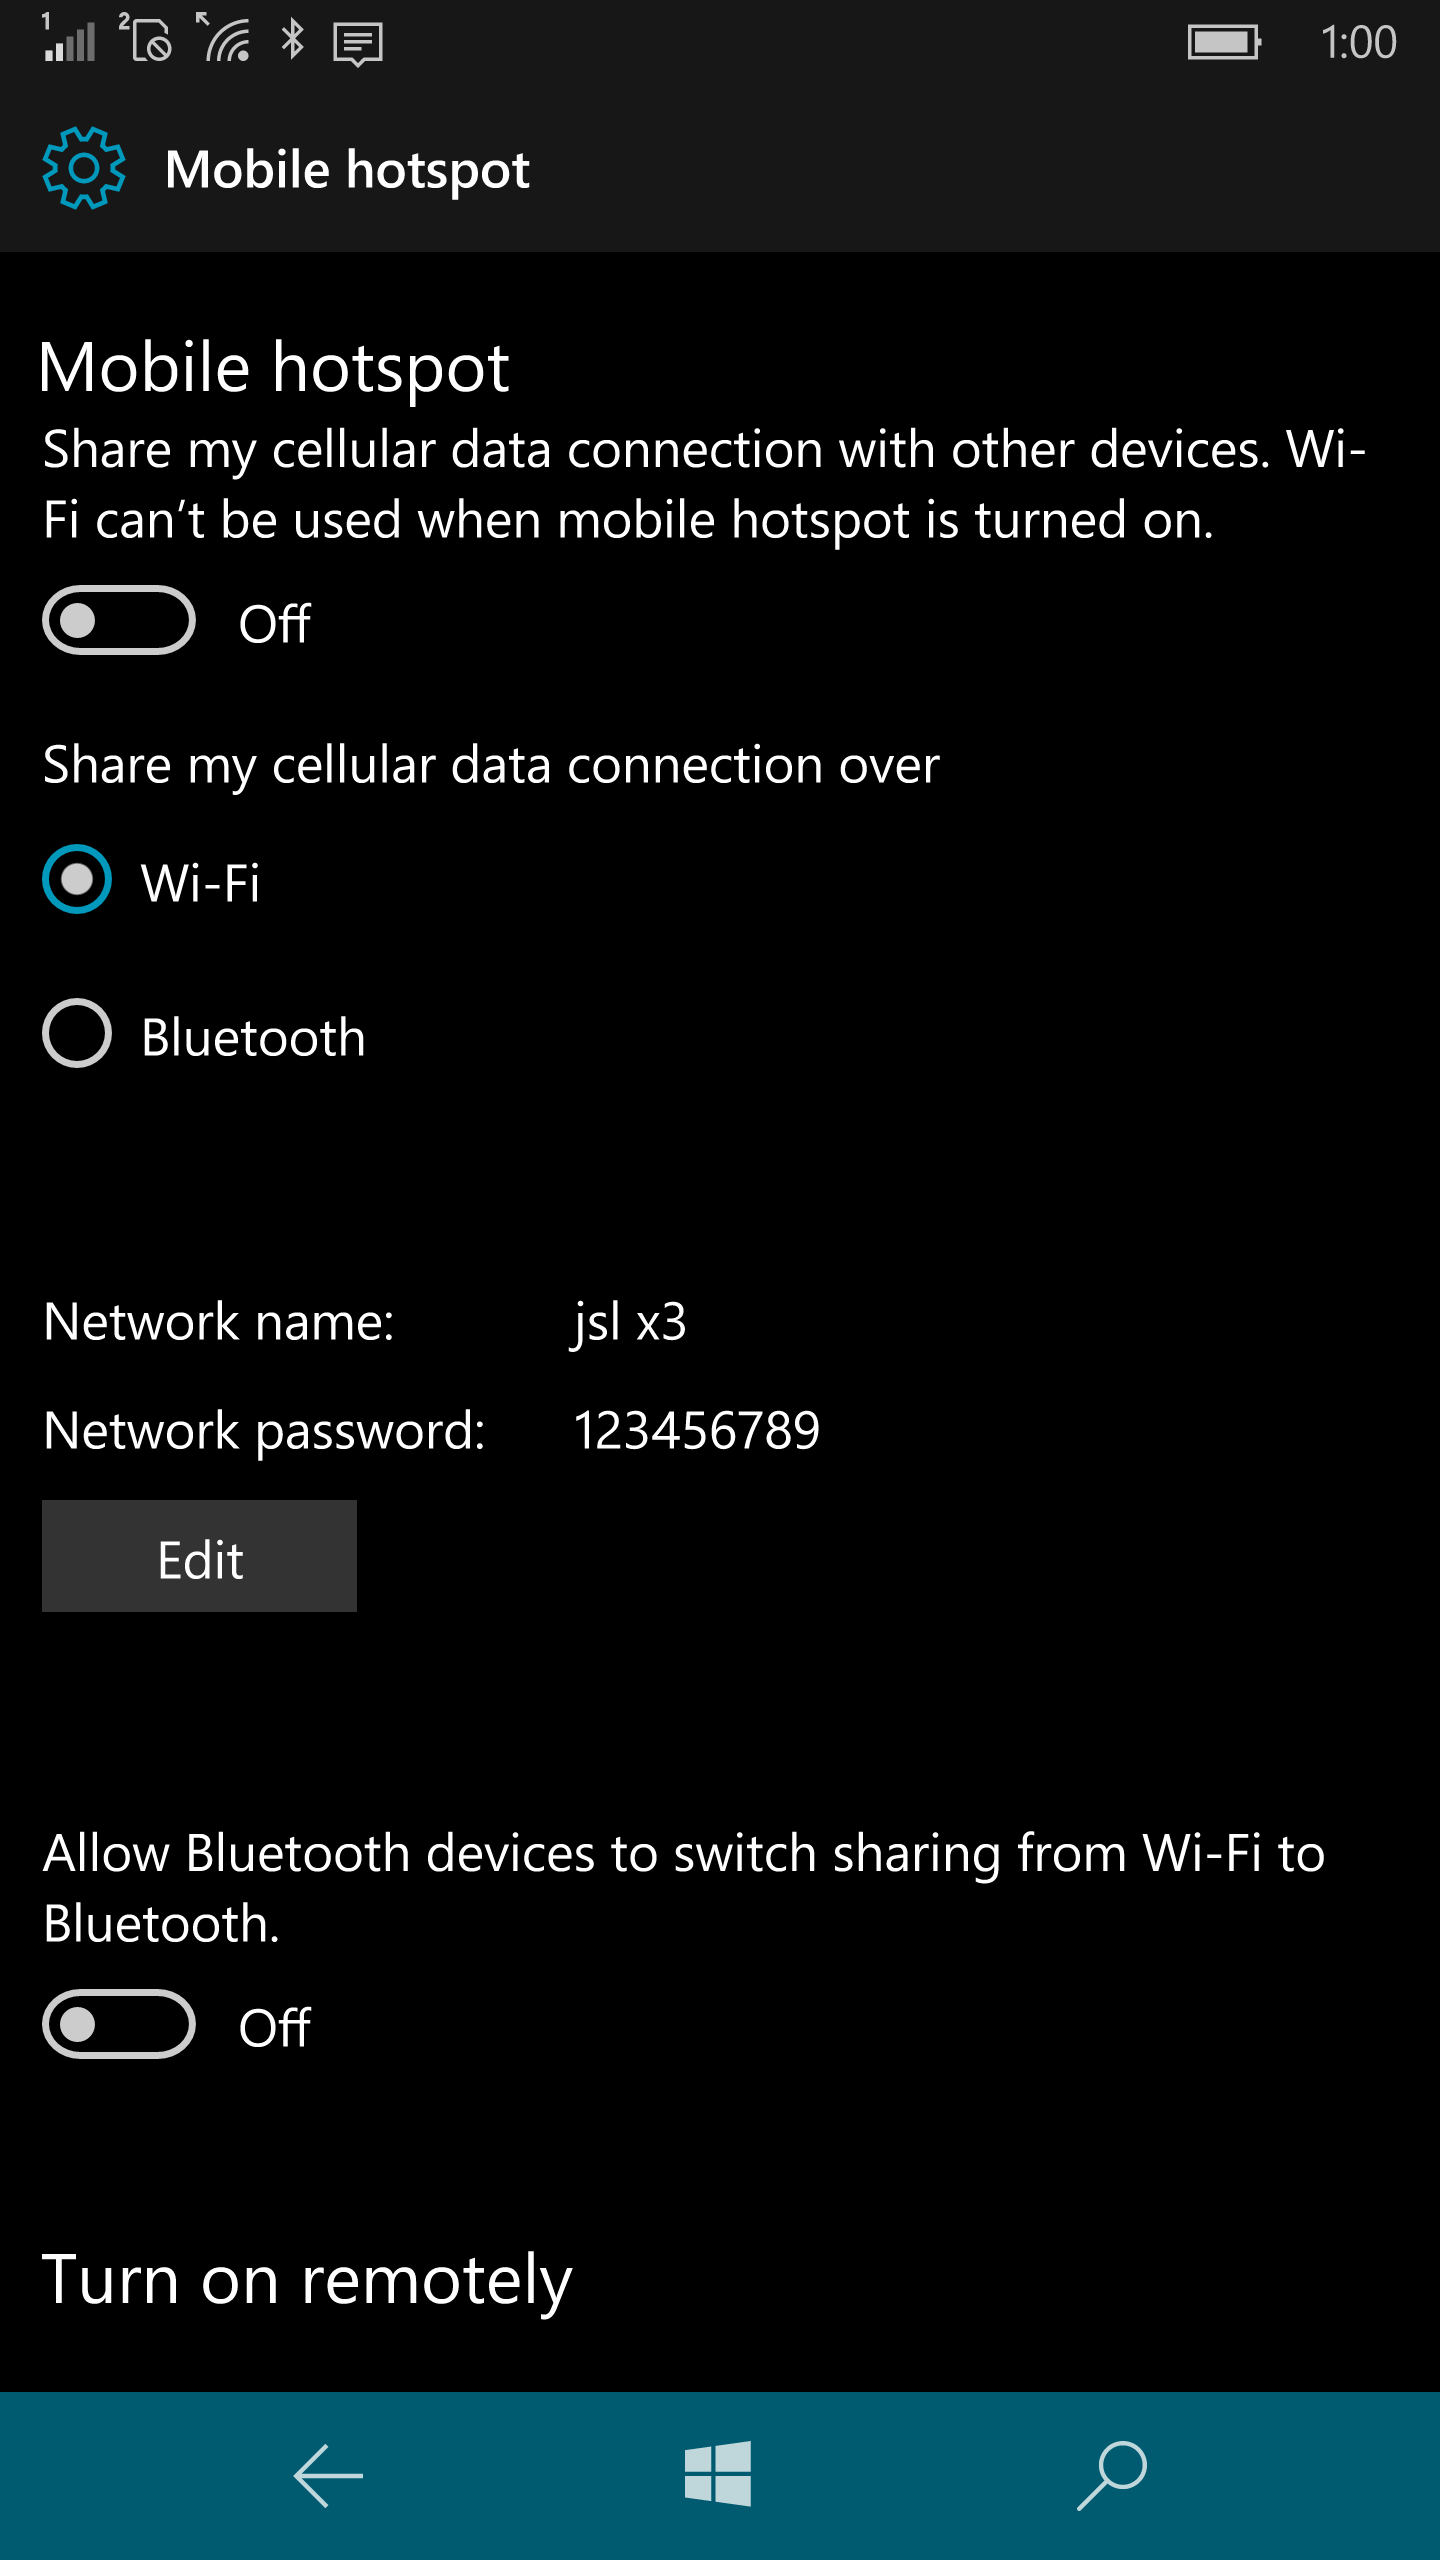 Mobile hotspot not working - HP Support Community - 6131488